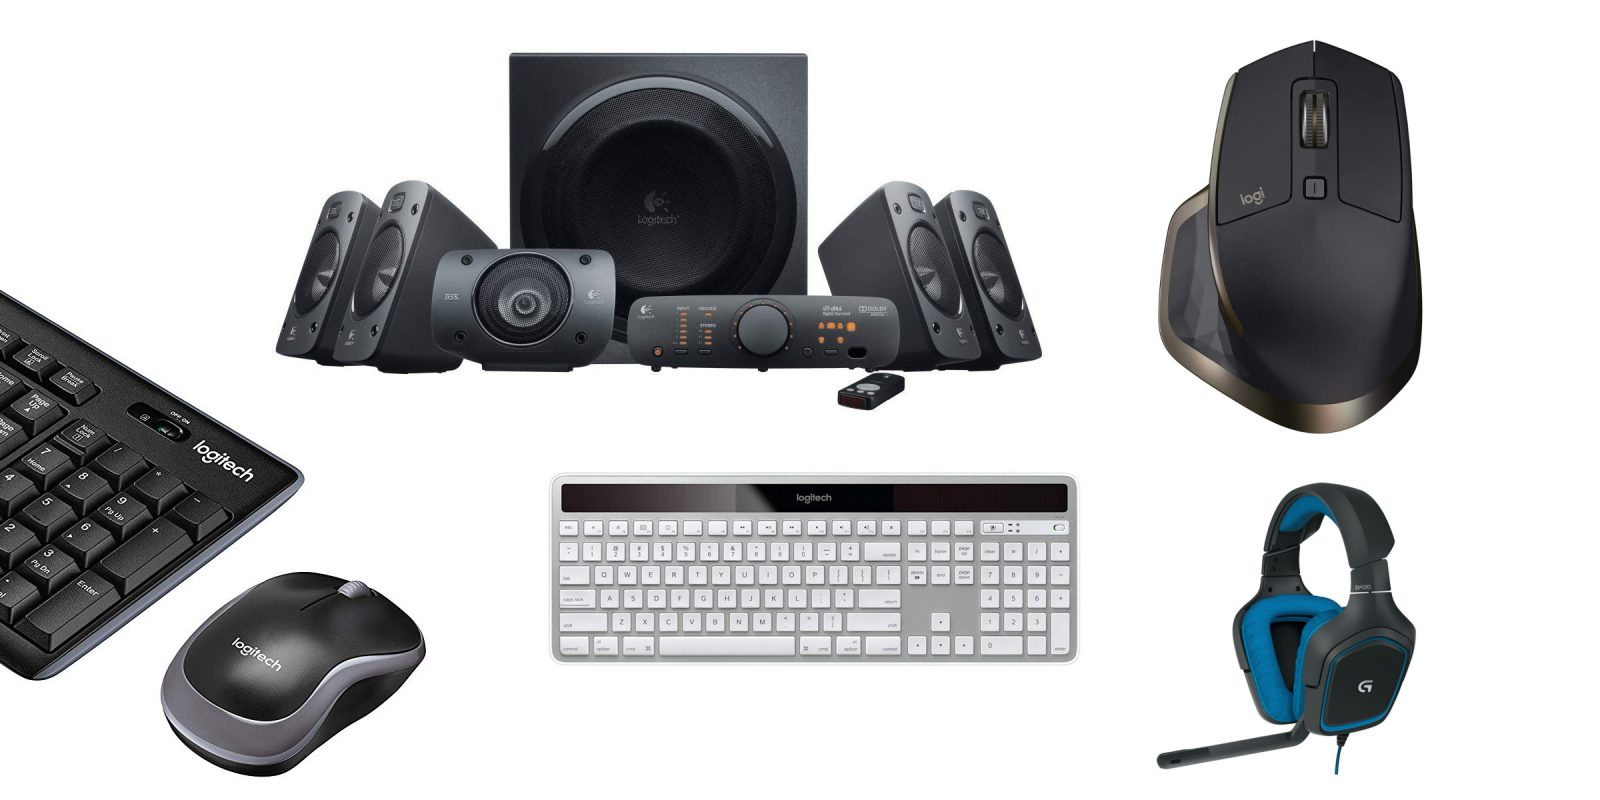 Amazon 1-day Logitech Sale from $14: Mac keyboards, mice, gaming